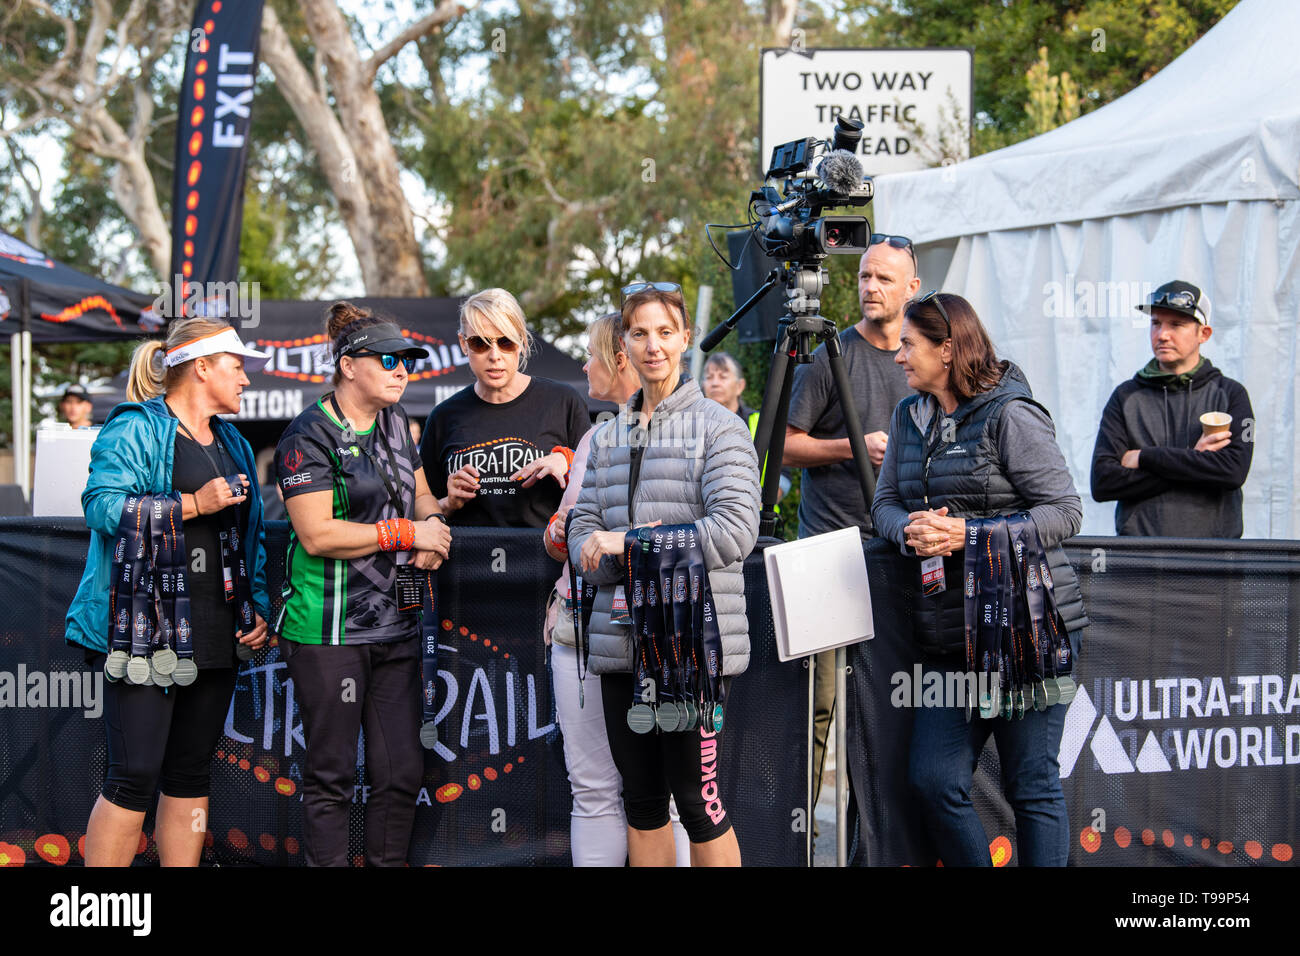 Blue Mountains, Australia - April 16 2019: Ultra-Trail Australia UTA11 race. Volunteers handing out medals at the finish line. Stock Photo